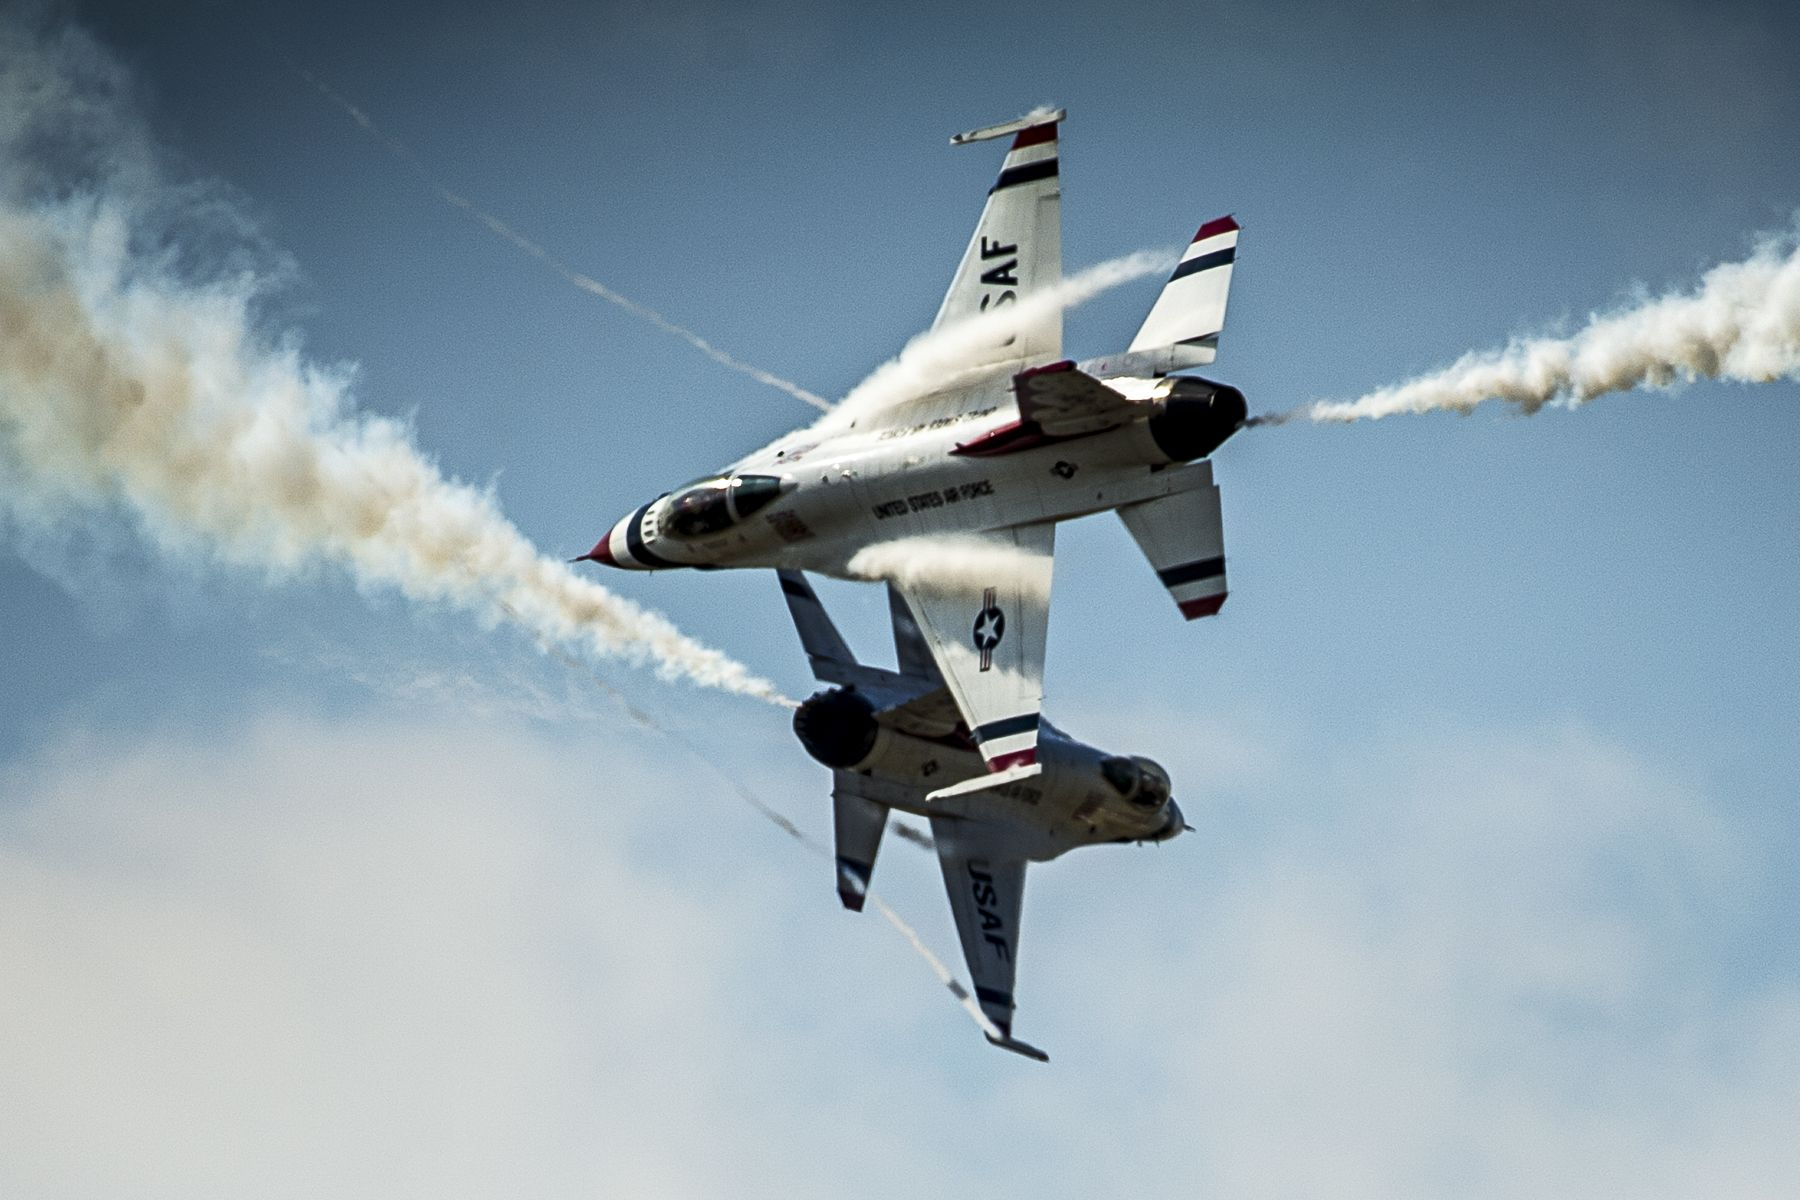 Pilots from the Air Force Thunderbirds air demonstration